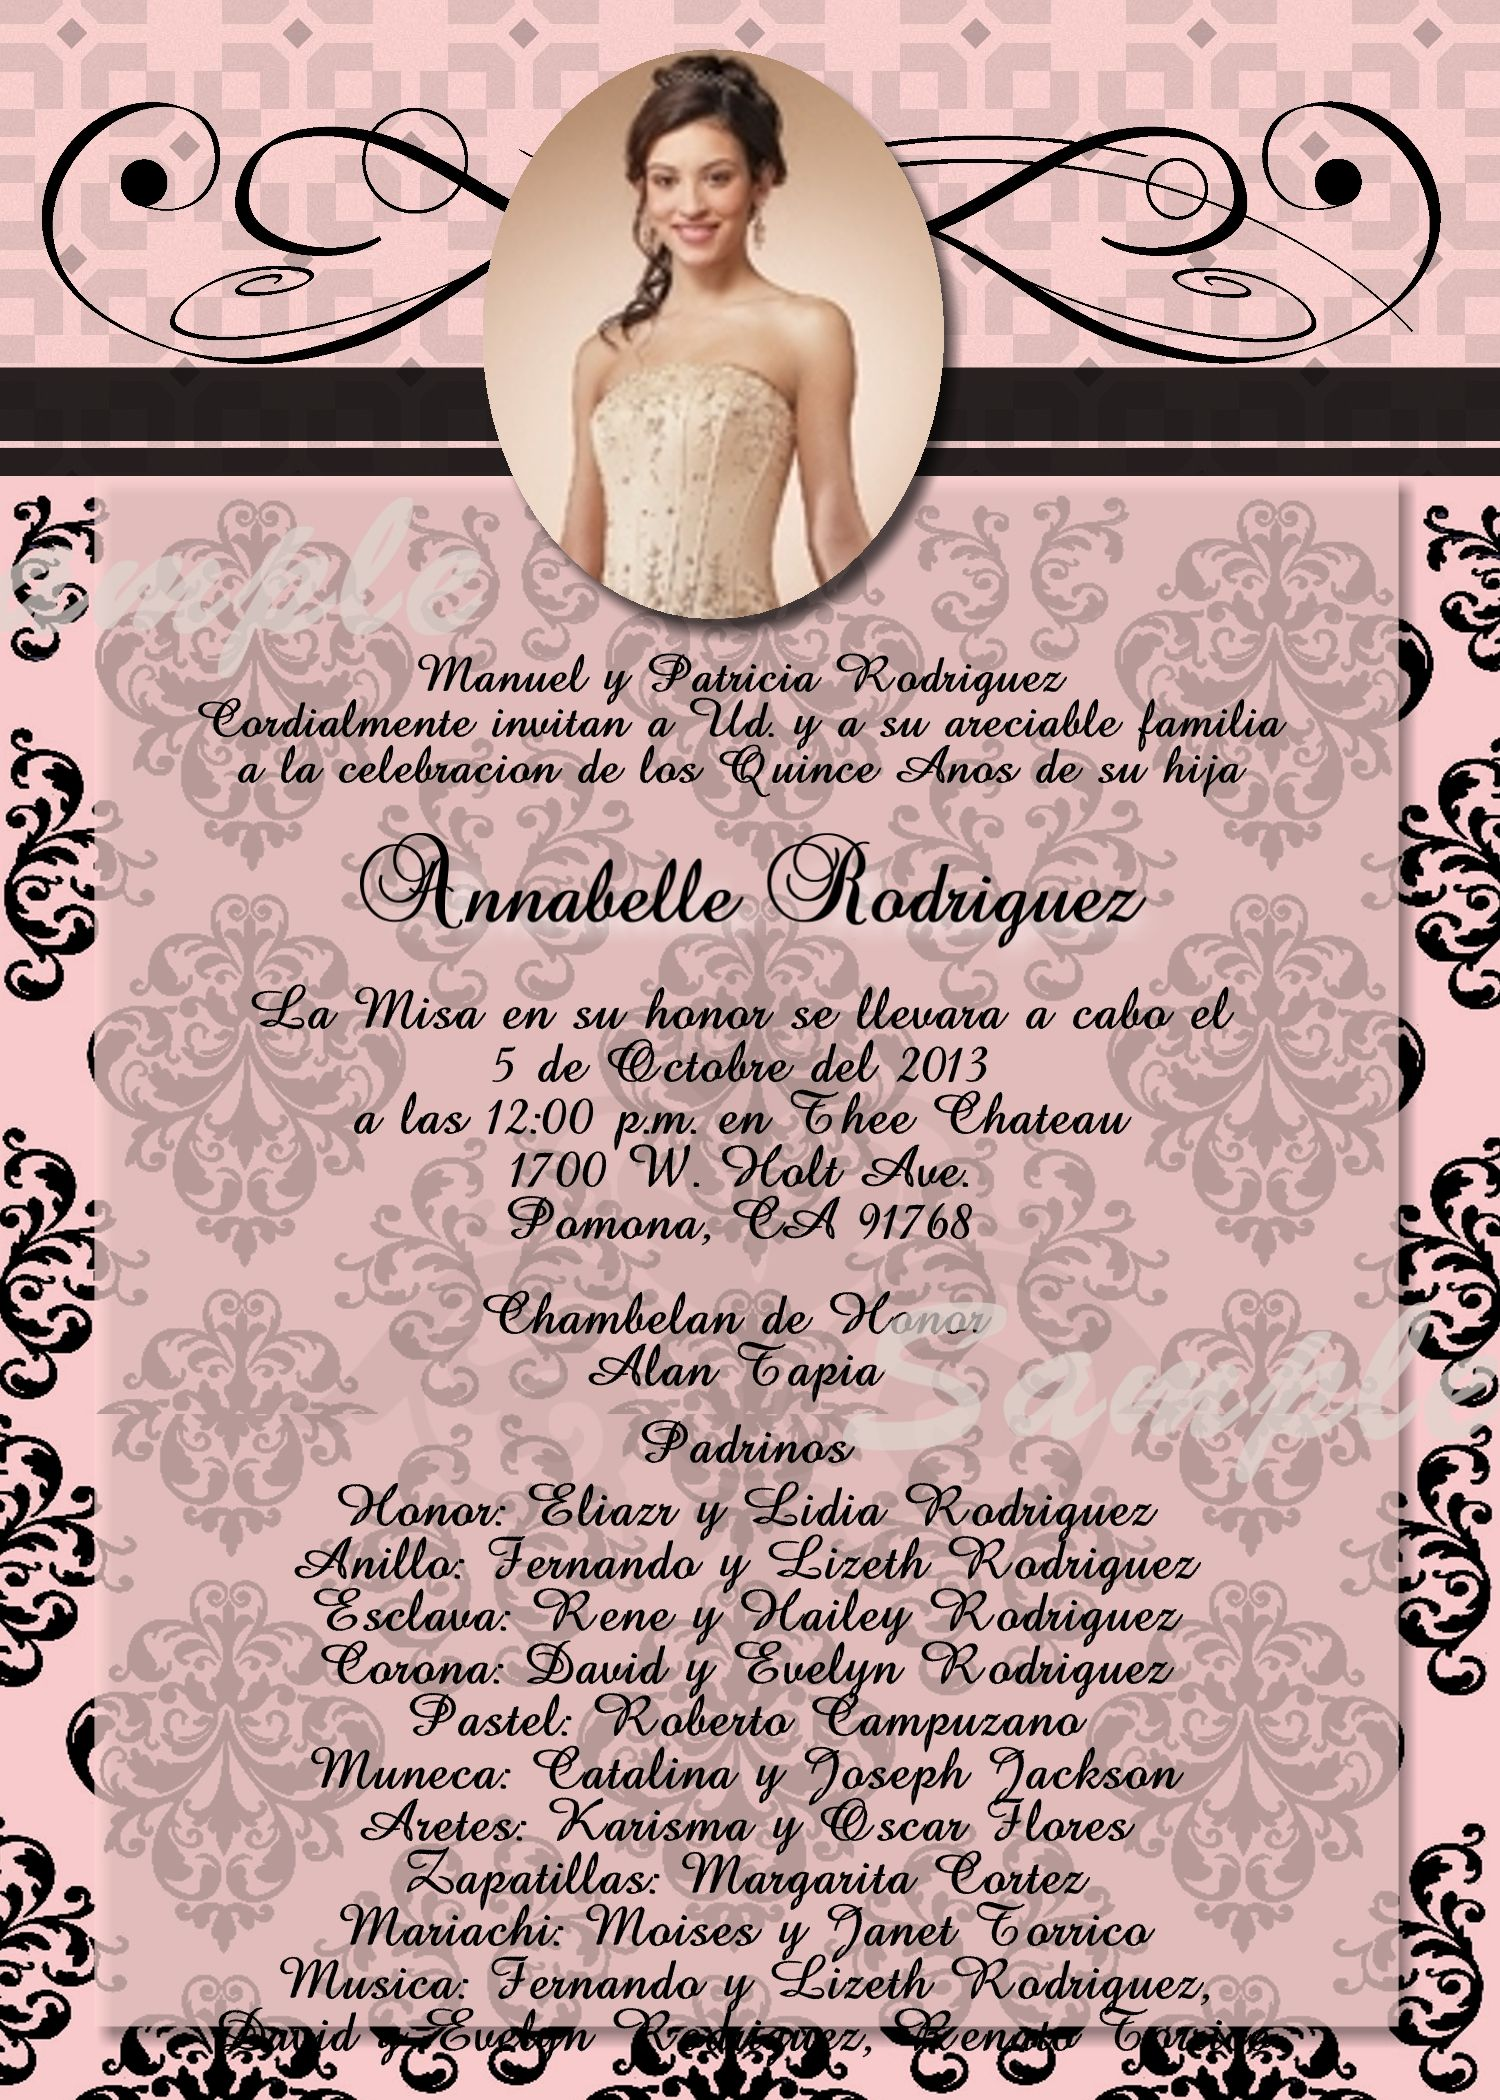 Houston Quinceanera Invitation Sample.jpg